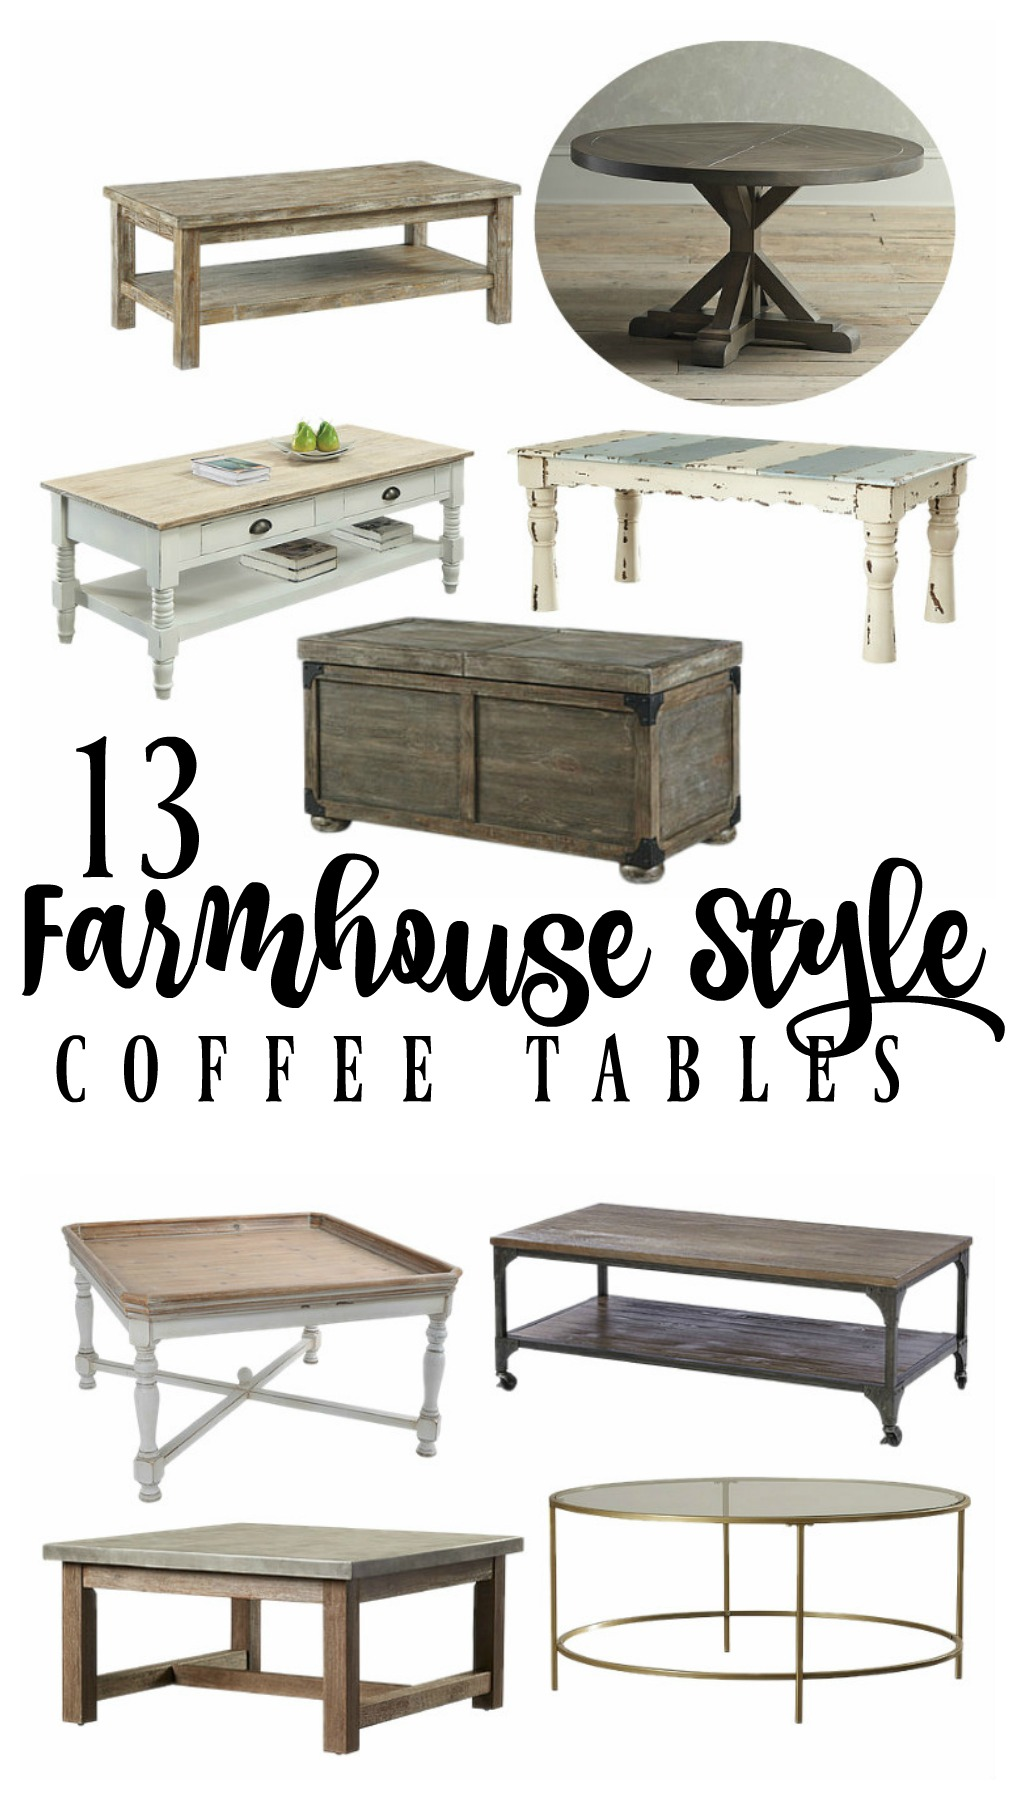 Farmhouse Style Coffee Tables | Rooms FOR Rent Blog